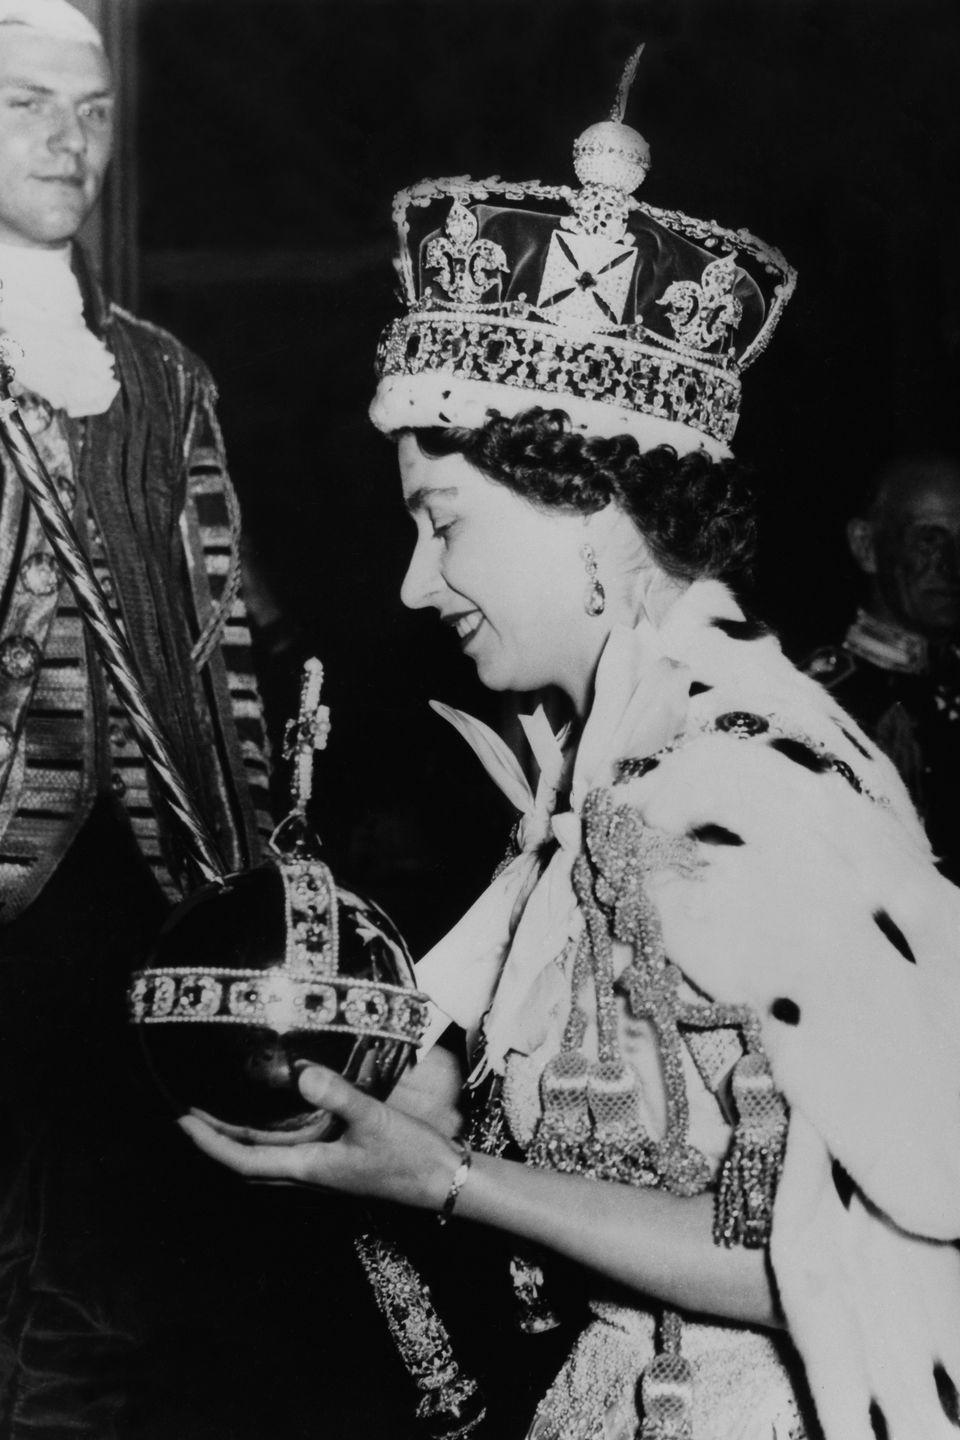 <p>She carried a large orb with a cross at the top while wearing a gigantic crown and a cape with tassels.</p>